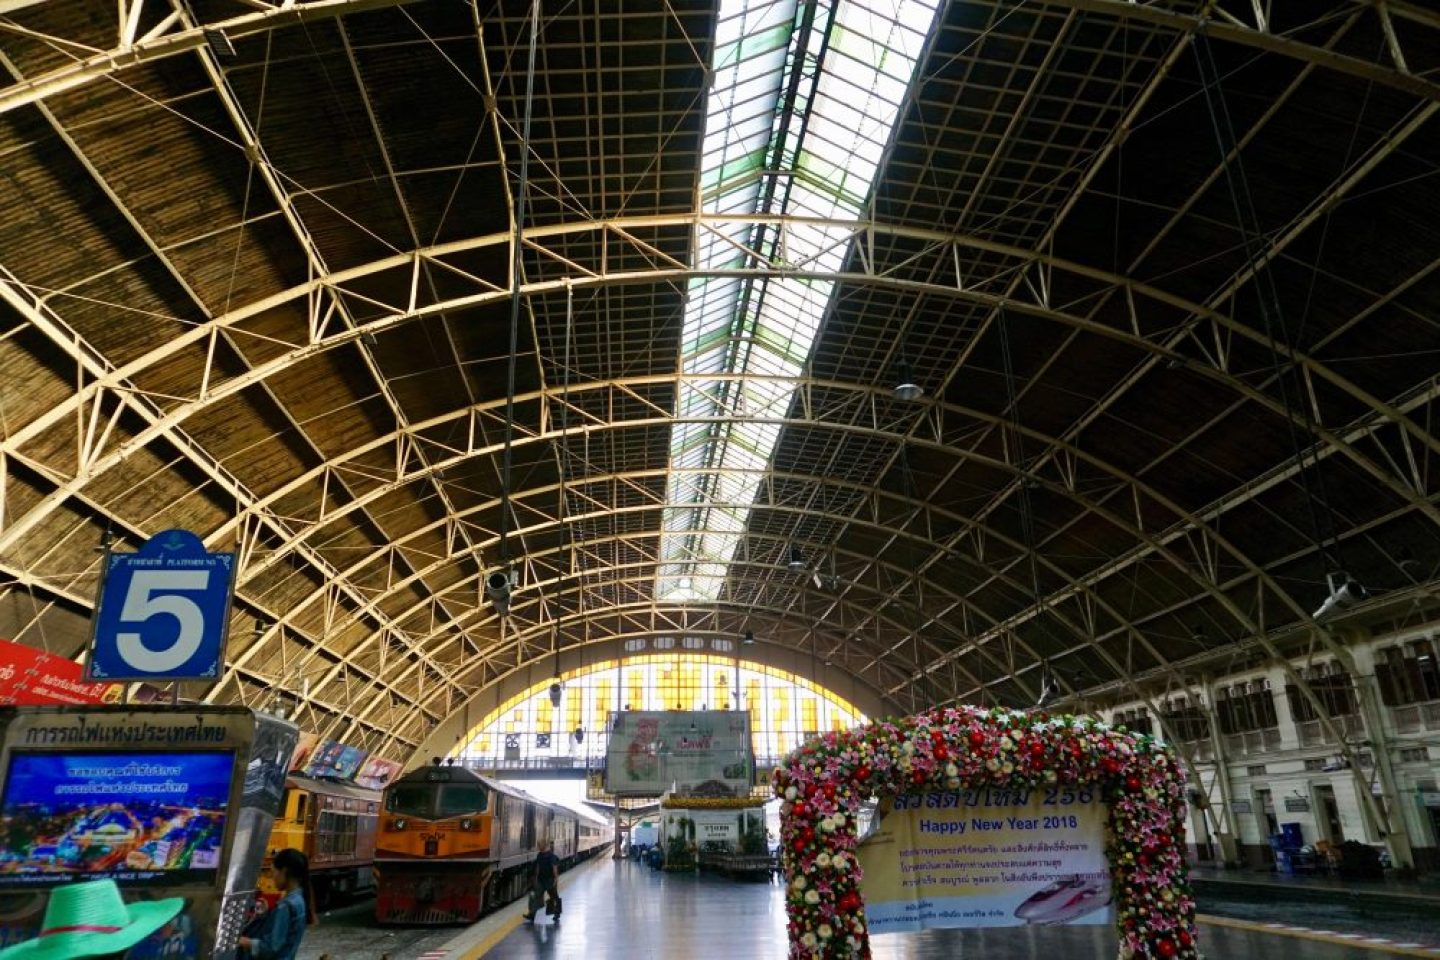 What is Bangkok Like? A train station that gets you to where you need to go!